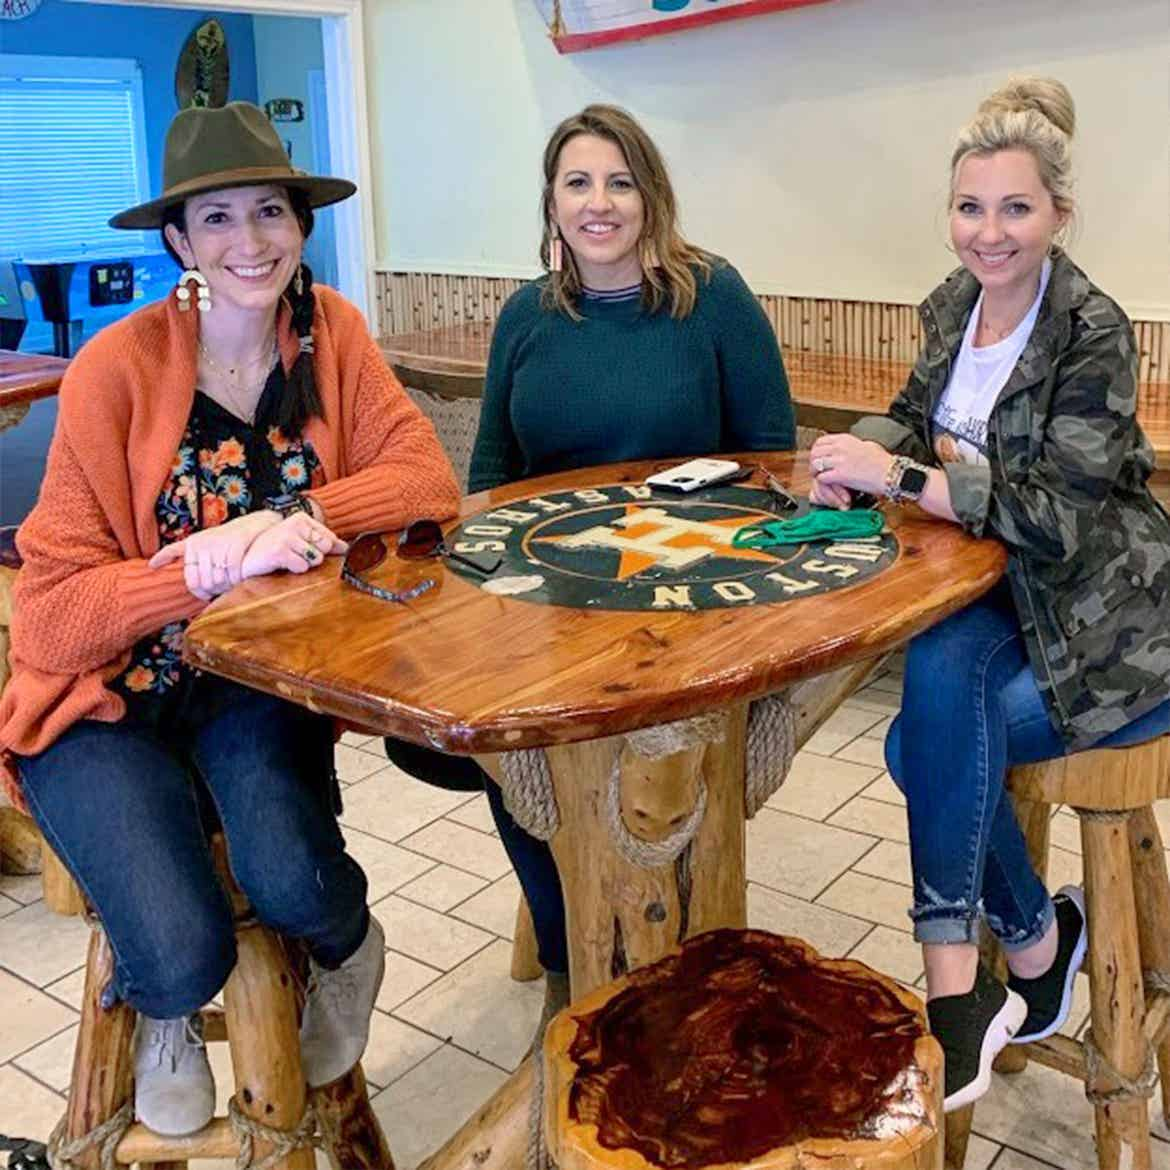 Featured Contributor, Amanda Nall (right) poses with her two friends at a table in Galveston, Tx.